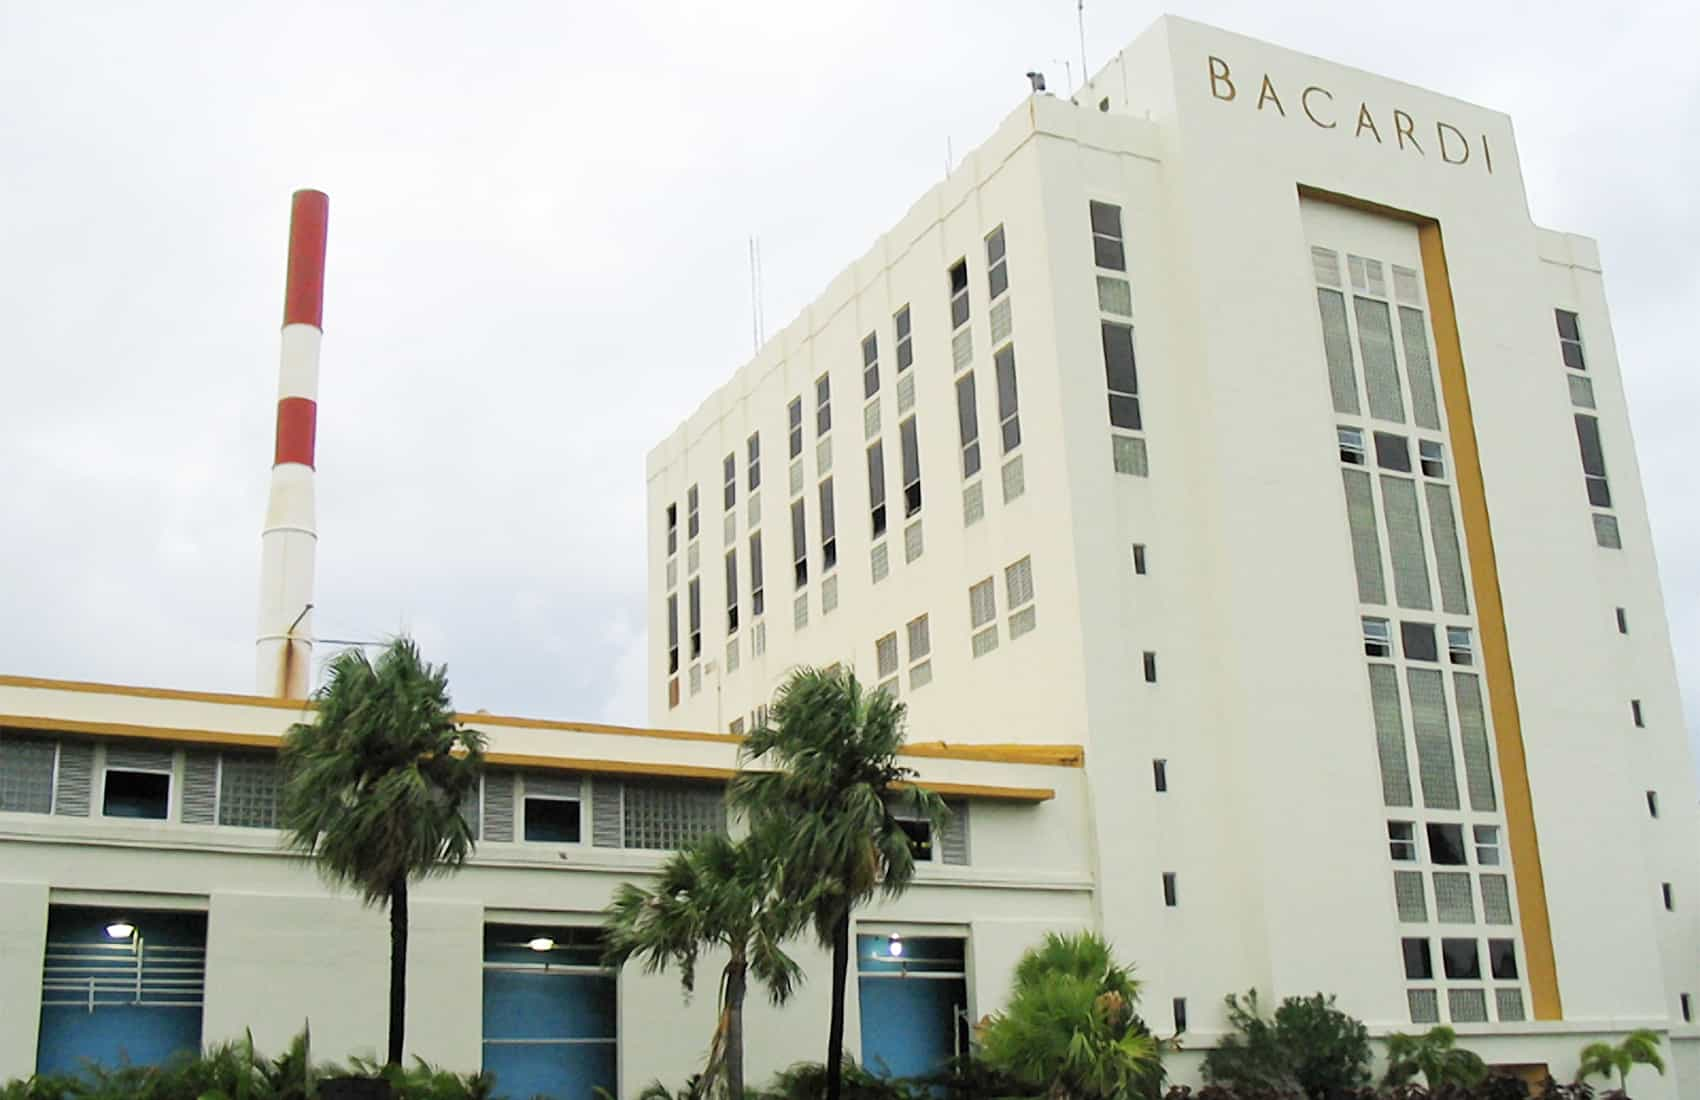 Bacardi cathedral